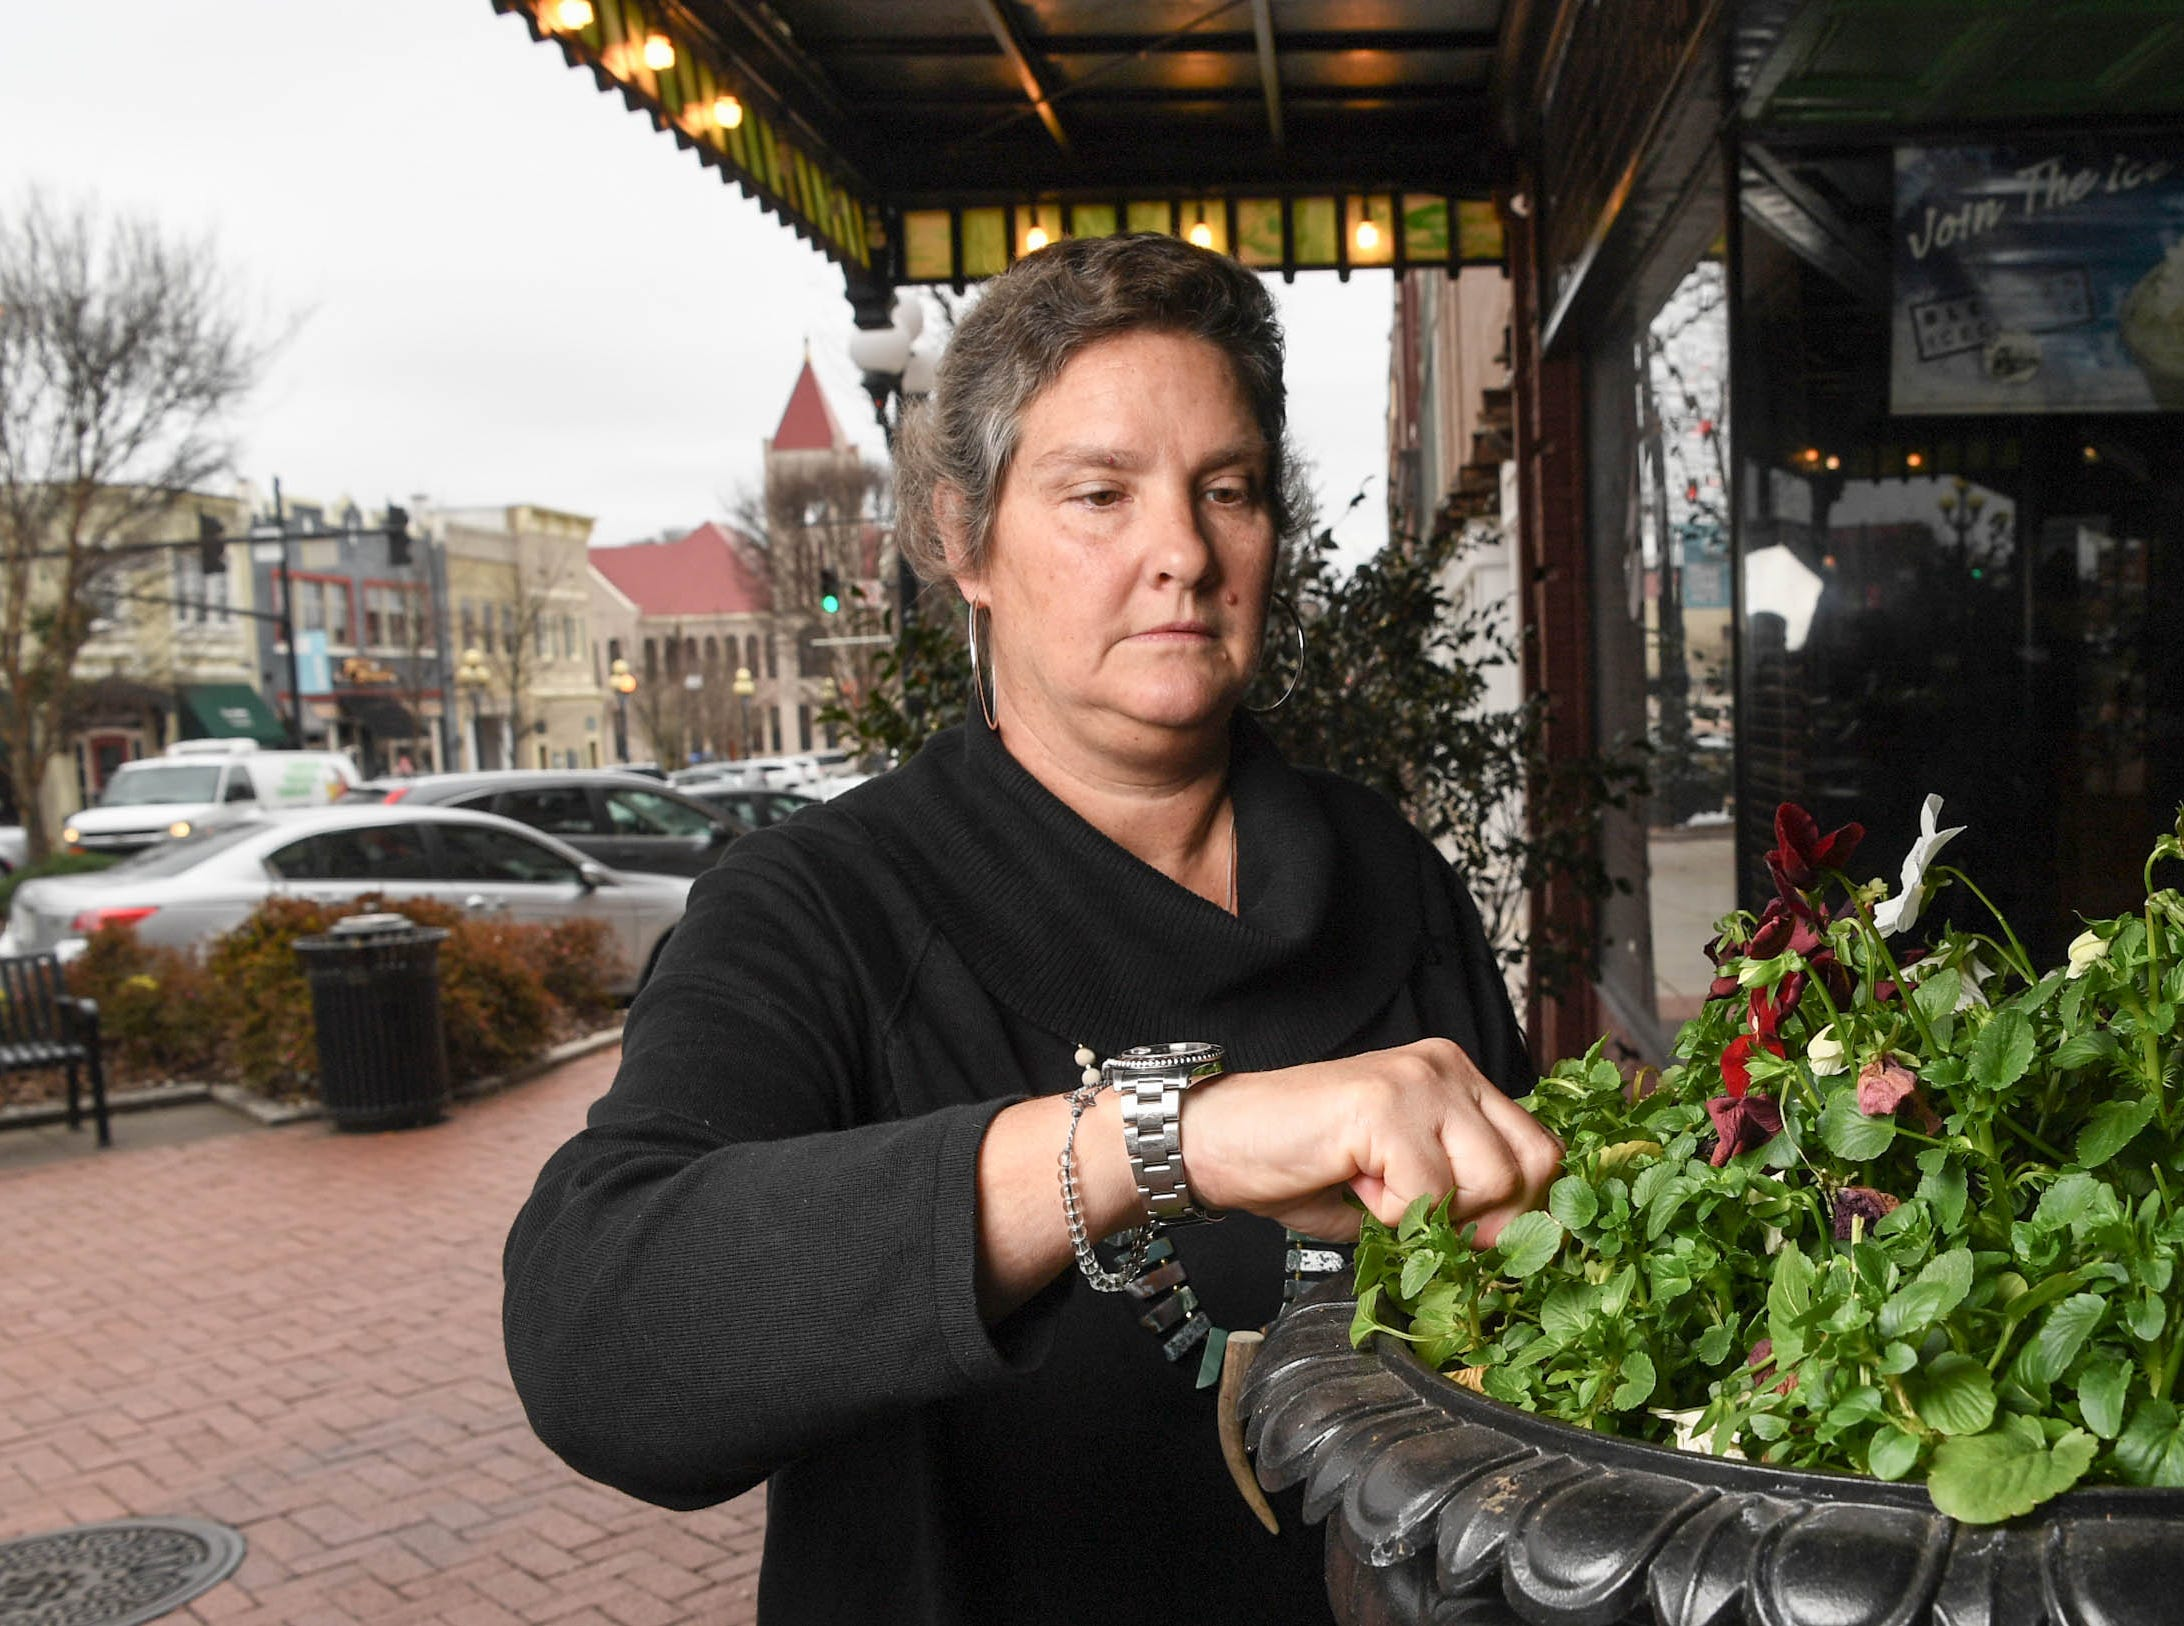 Sabra Nickas, co-owner of Sullivan's Metropolitan Grill, makes cheesecakes and cakes, also takes care of many other restaurant items including a display of flowers at the front door in downtown Anderson in February.  The restaurant reached its 20th anniversary.